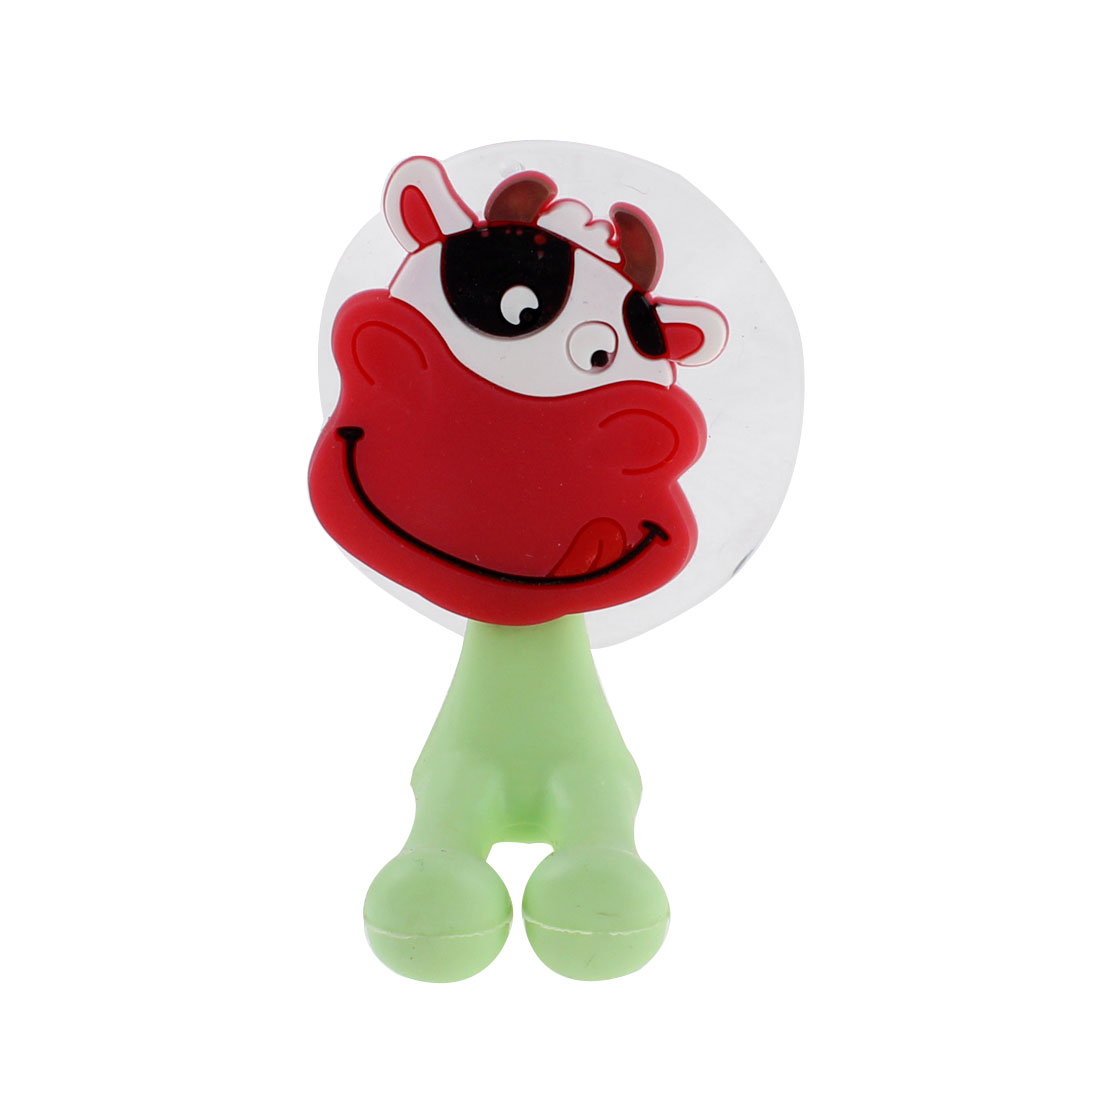 Silicone Suction Cup Antibacterial Cow Style Toothbrush Holder Hooks Hanger